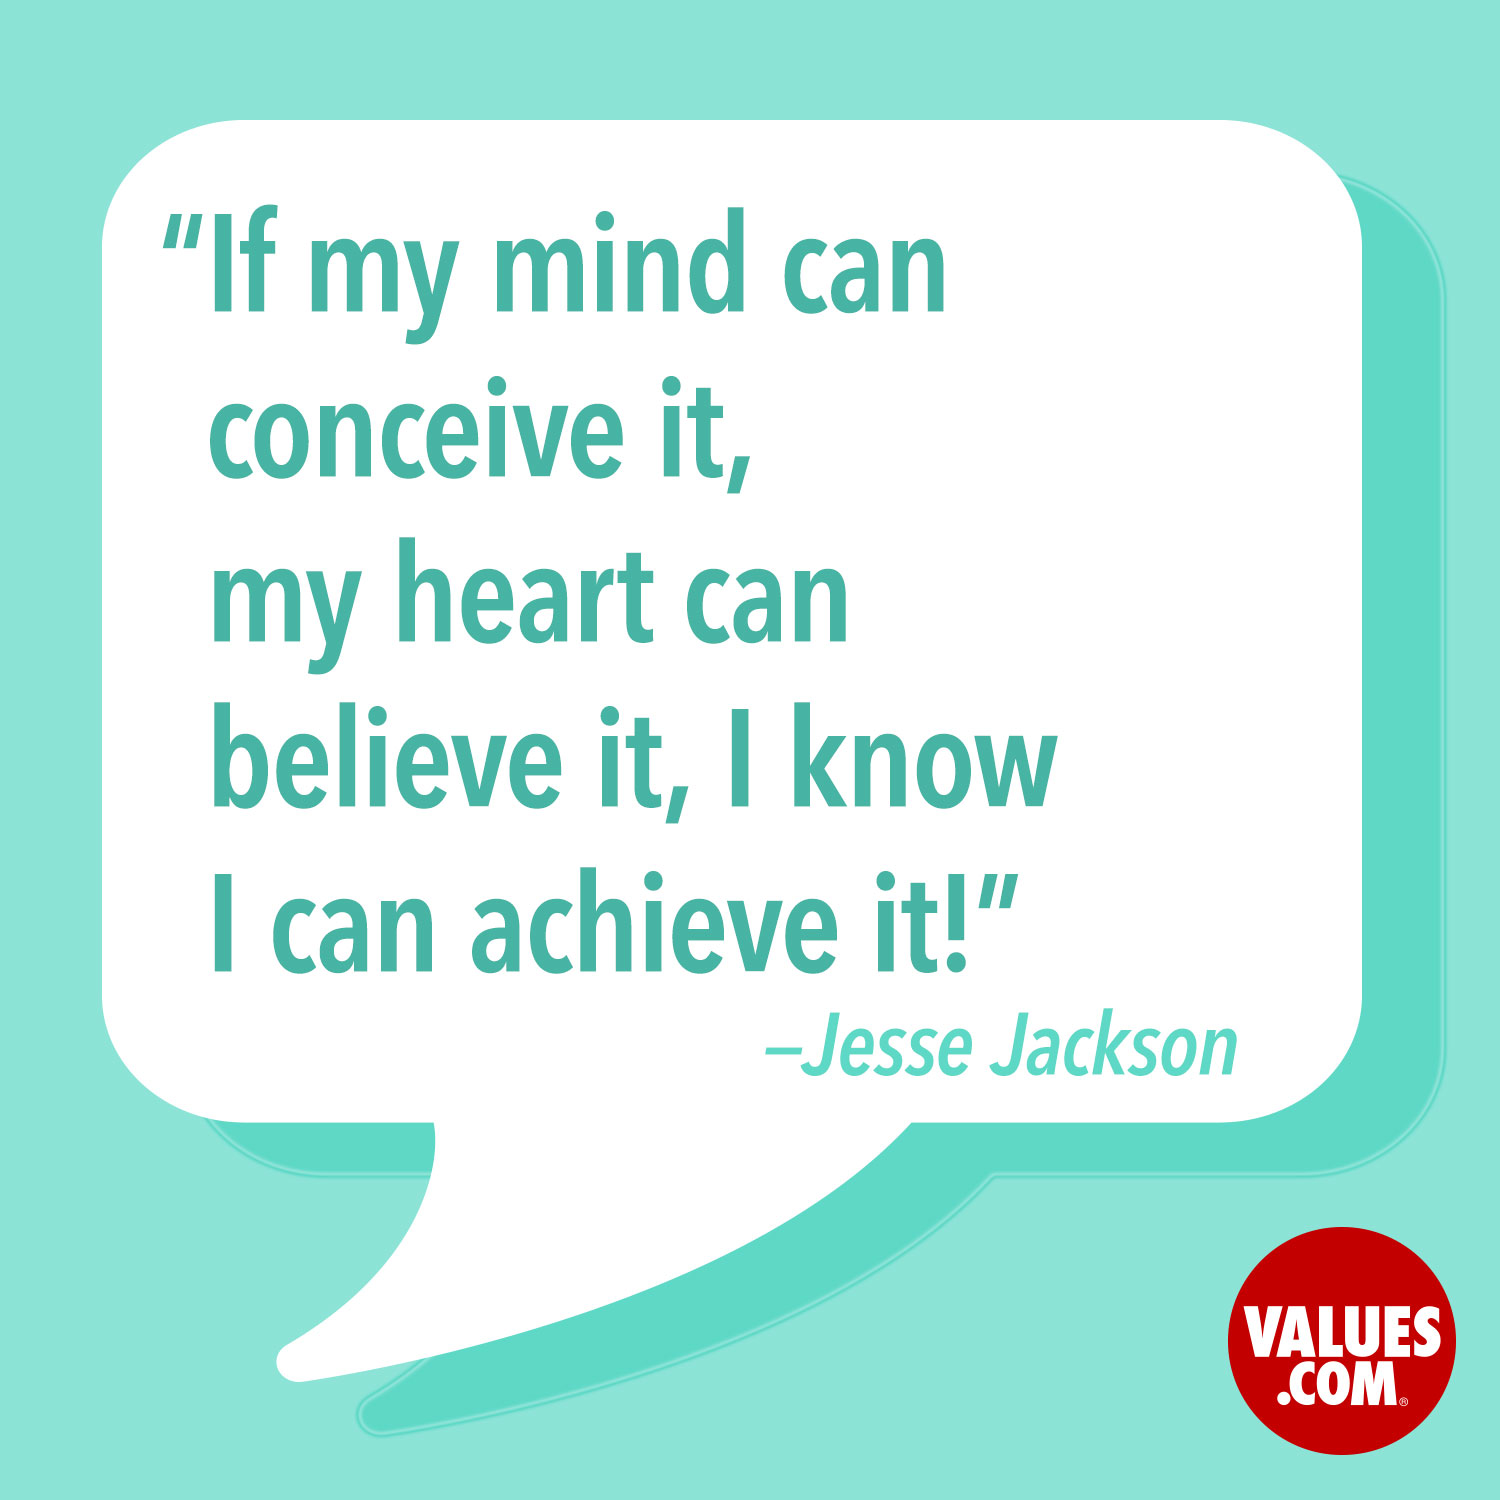 If my mind can conceive it, my heart can believe it, I know I can achieve it! —Jesse Jackson